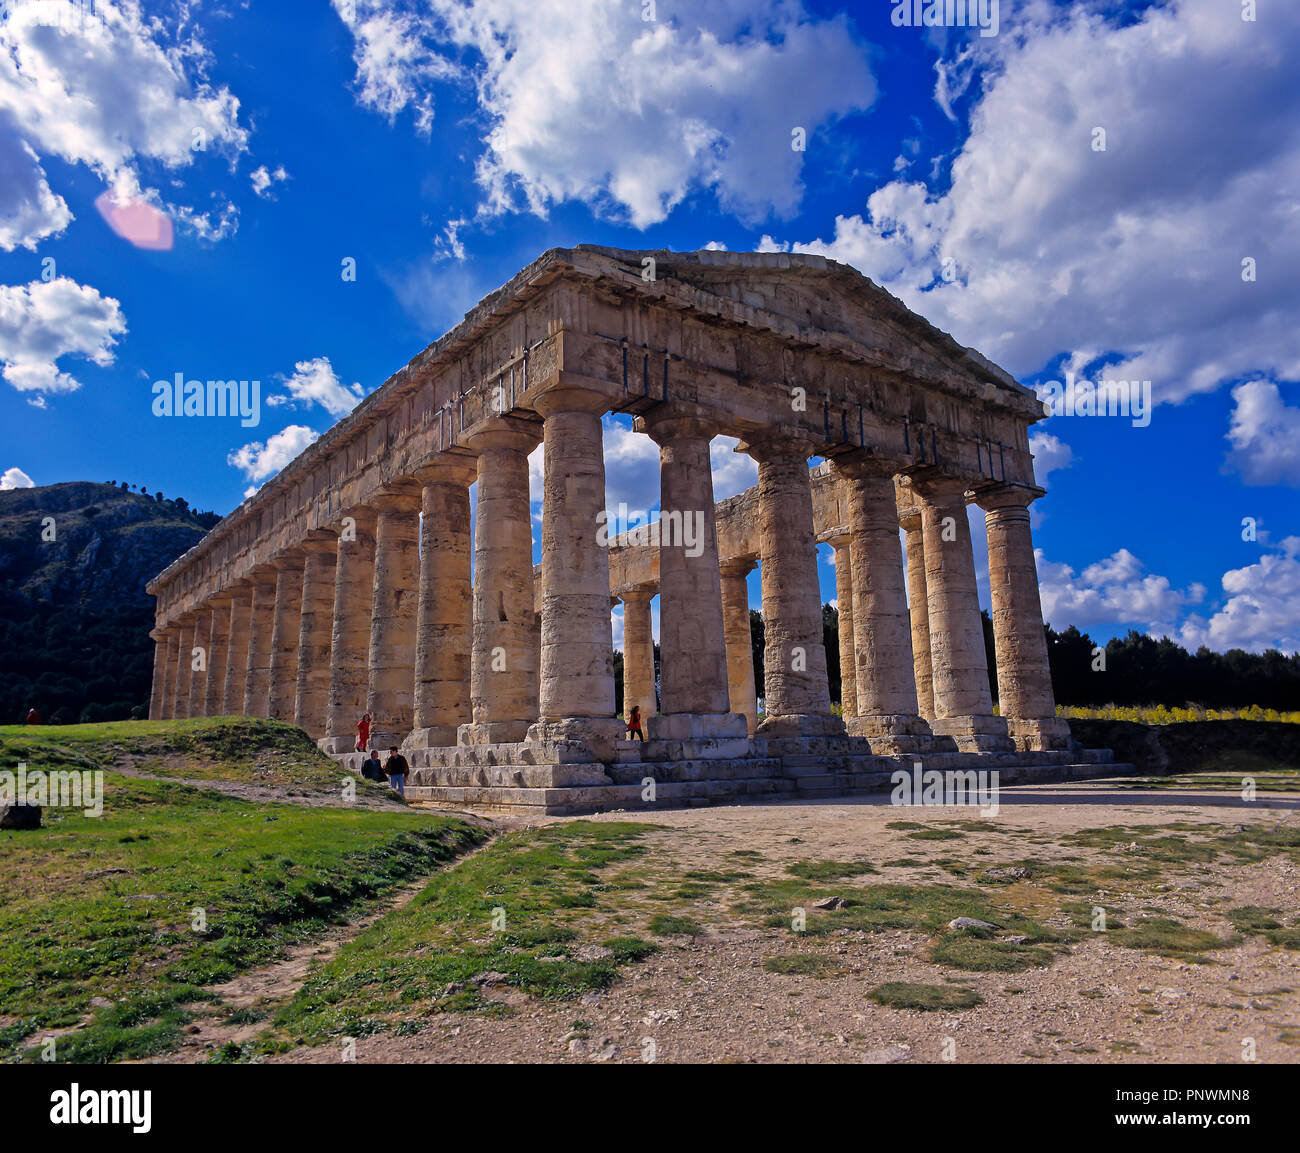 Greek temple of Segesta - 5th century BC. Sicily. Italy. Europe Stock Photo